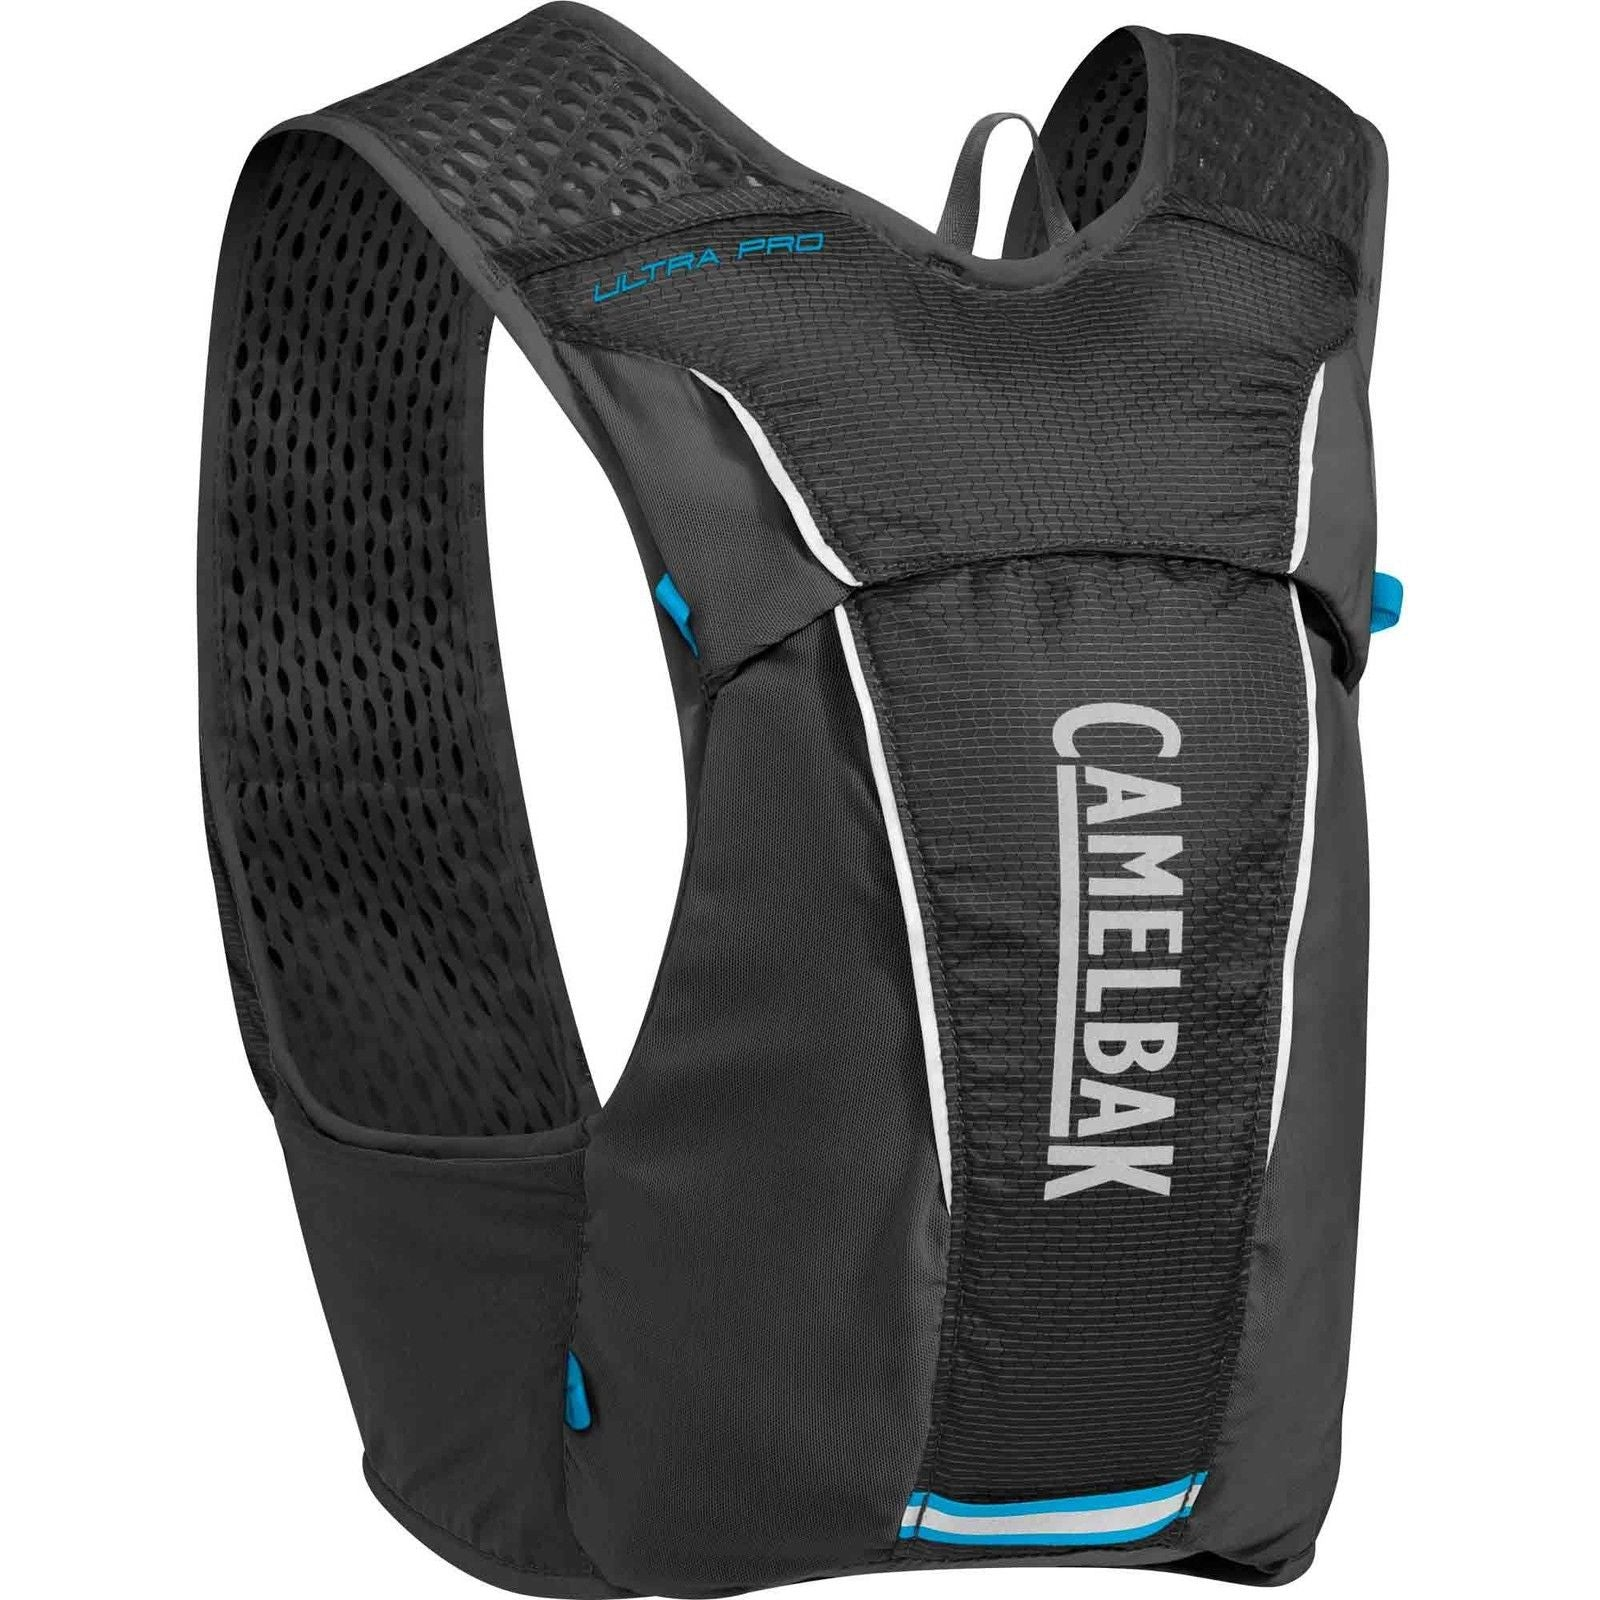 Camelbak Ultra Pro Hydration Jogging Training Running Vest - Trailblazer Outdoors, Pickering